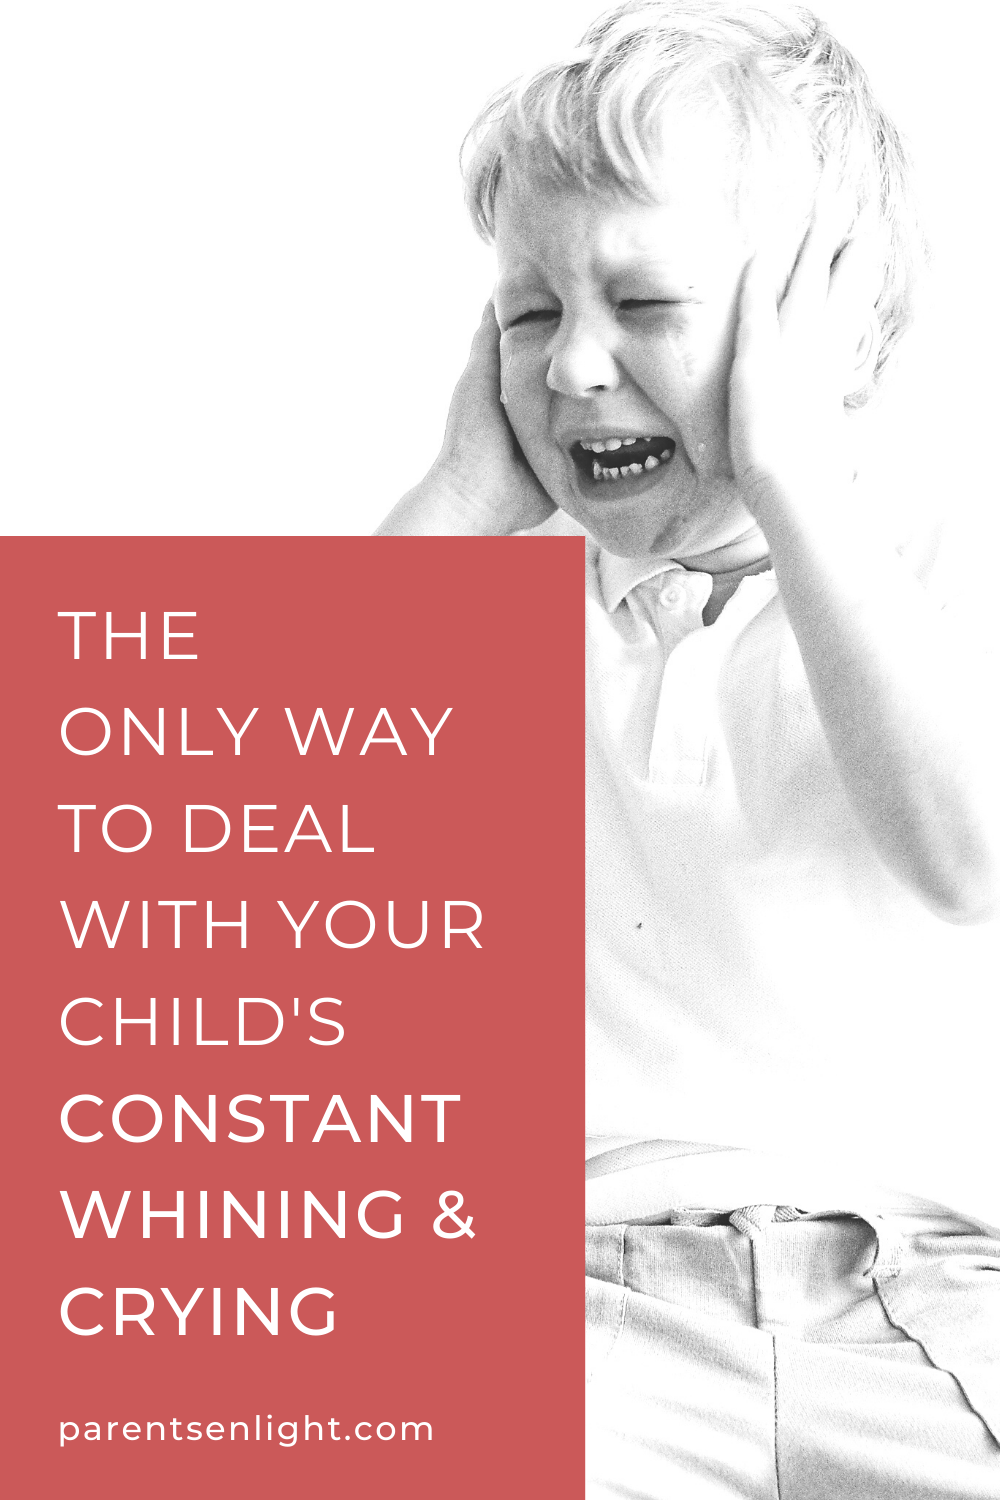 We tend to think that kids who are constantly whining and crying are spoiled, entitled, selfish, and whatnot. We tend to blame ourselves for giving them too much, and then toughening up, upgrading our discipline methods, and being more strict. All this to find that the whining and crying only got worse... Well, something totally different is going on there. Read more... #positiveparenting #positivepsychology #gentleparenting #peacefulparenting #attachmentparenting #raisinghappykids #toddlers #childdiscipline #parentingtips #parenting101 #motherhood #tantrums #stoptantrums #respectfulparenting #whinykids #constantlycryingkids